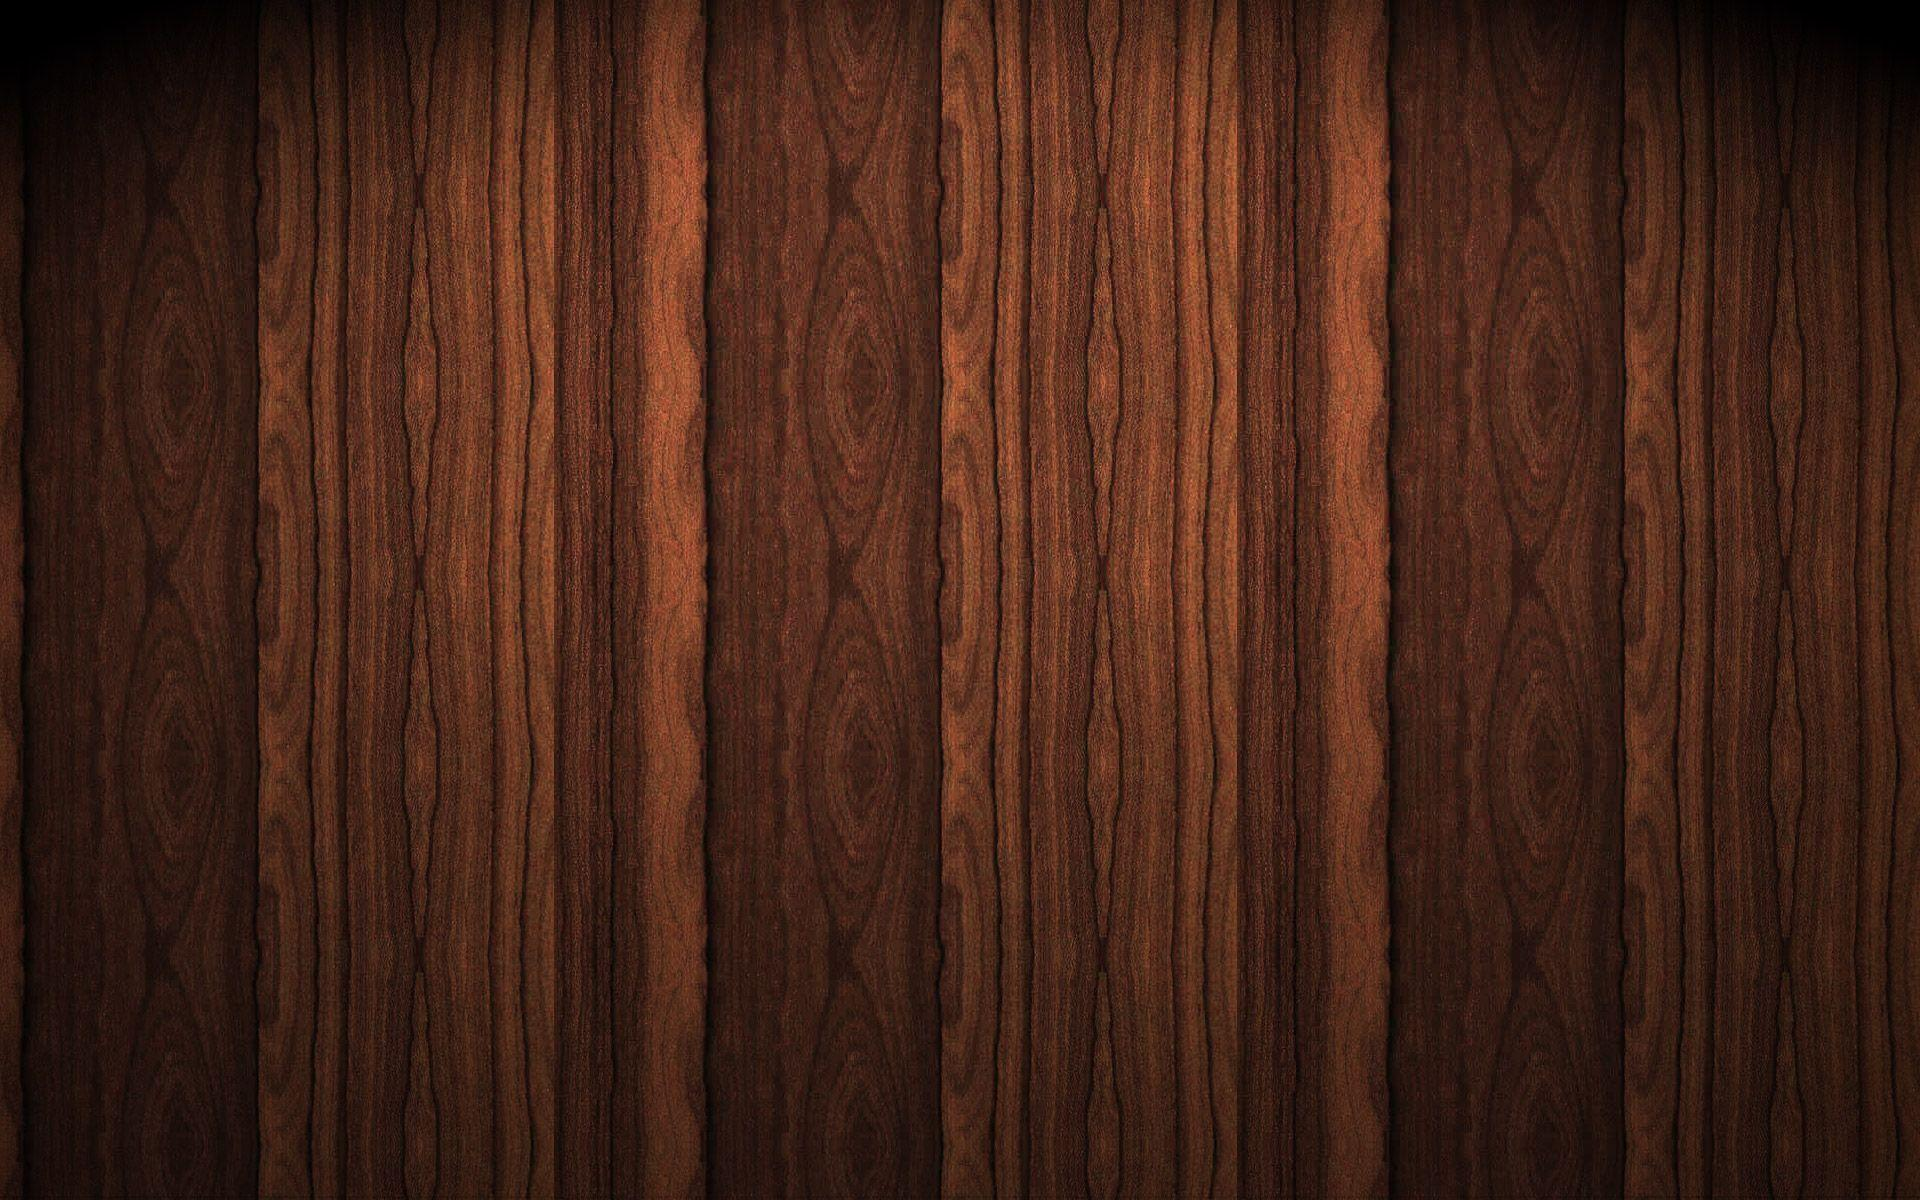 Wood hd wallpapers wallpaper cave for Wood wallpaper for walls